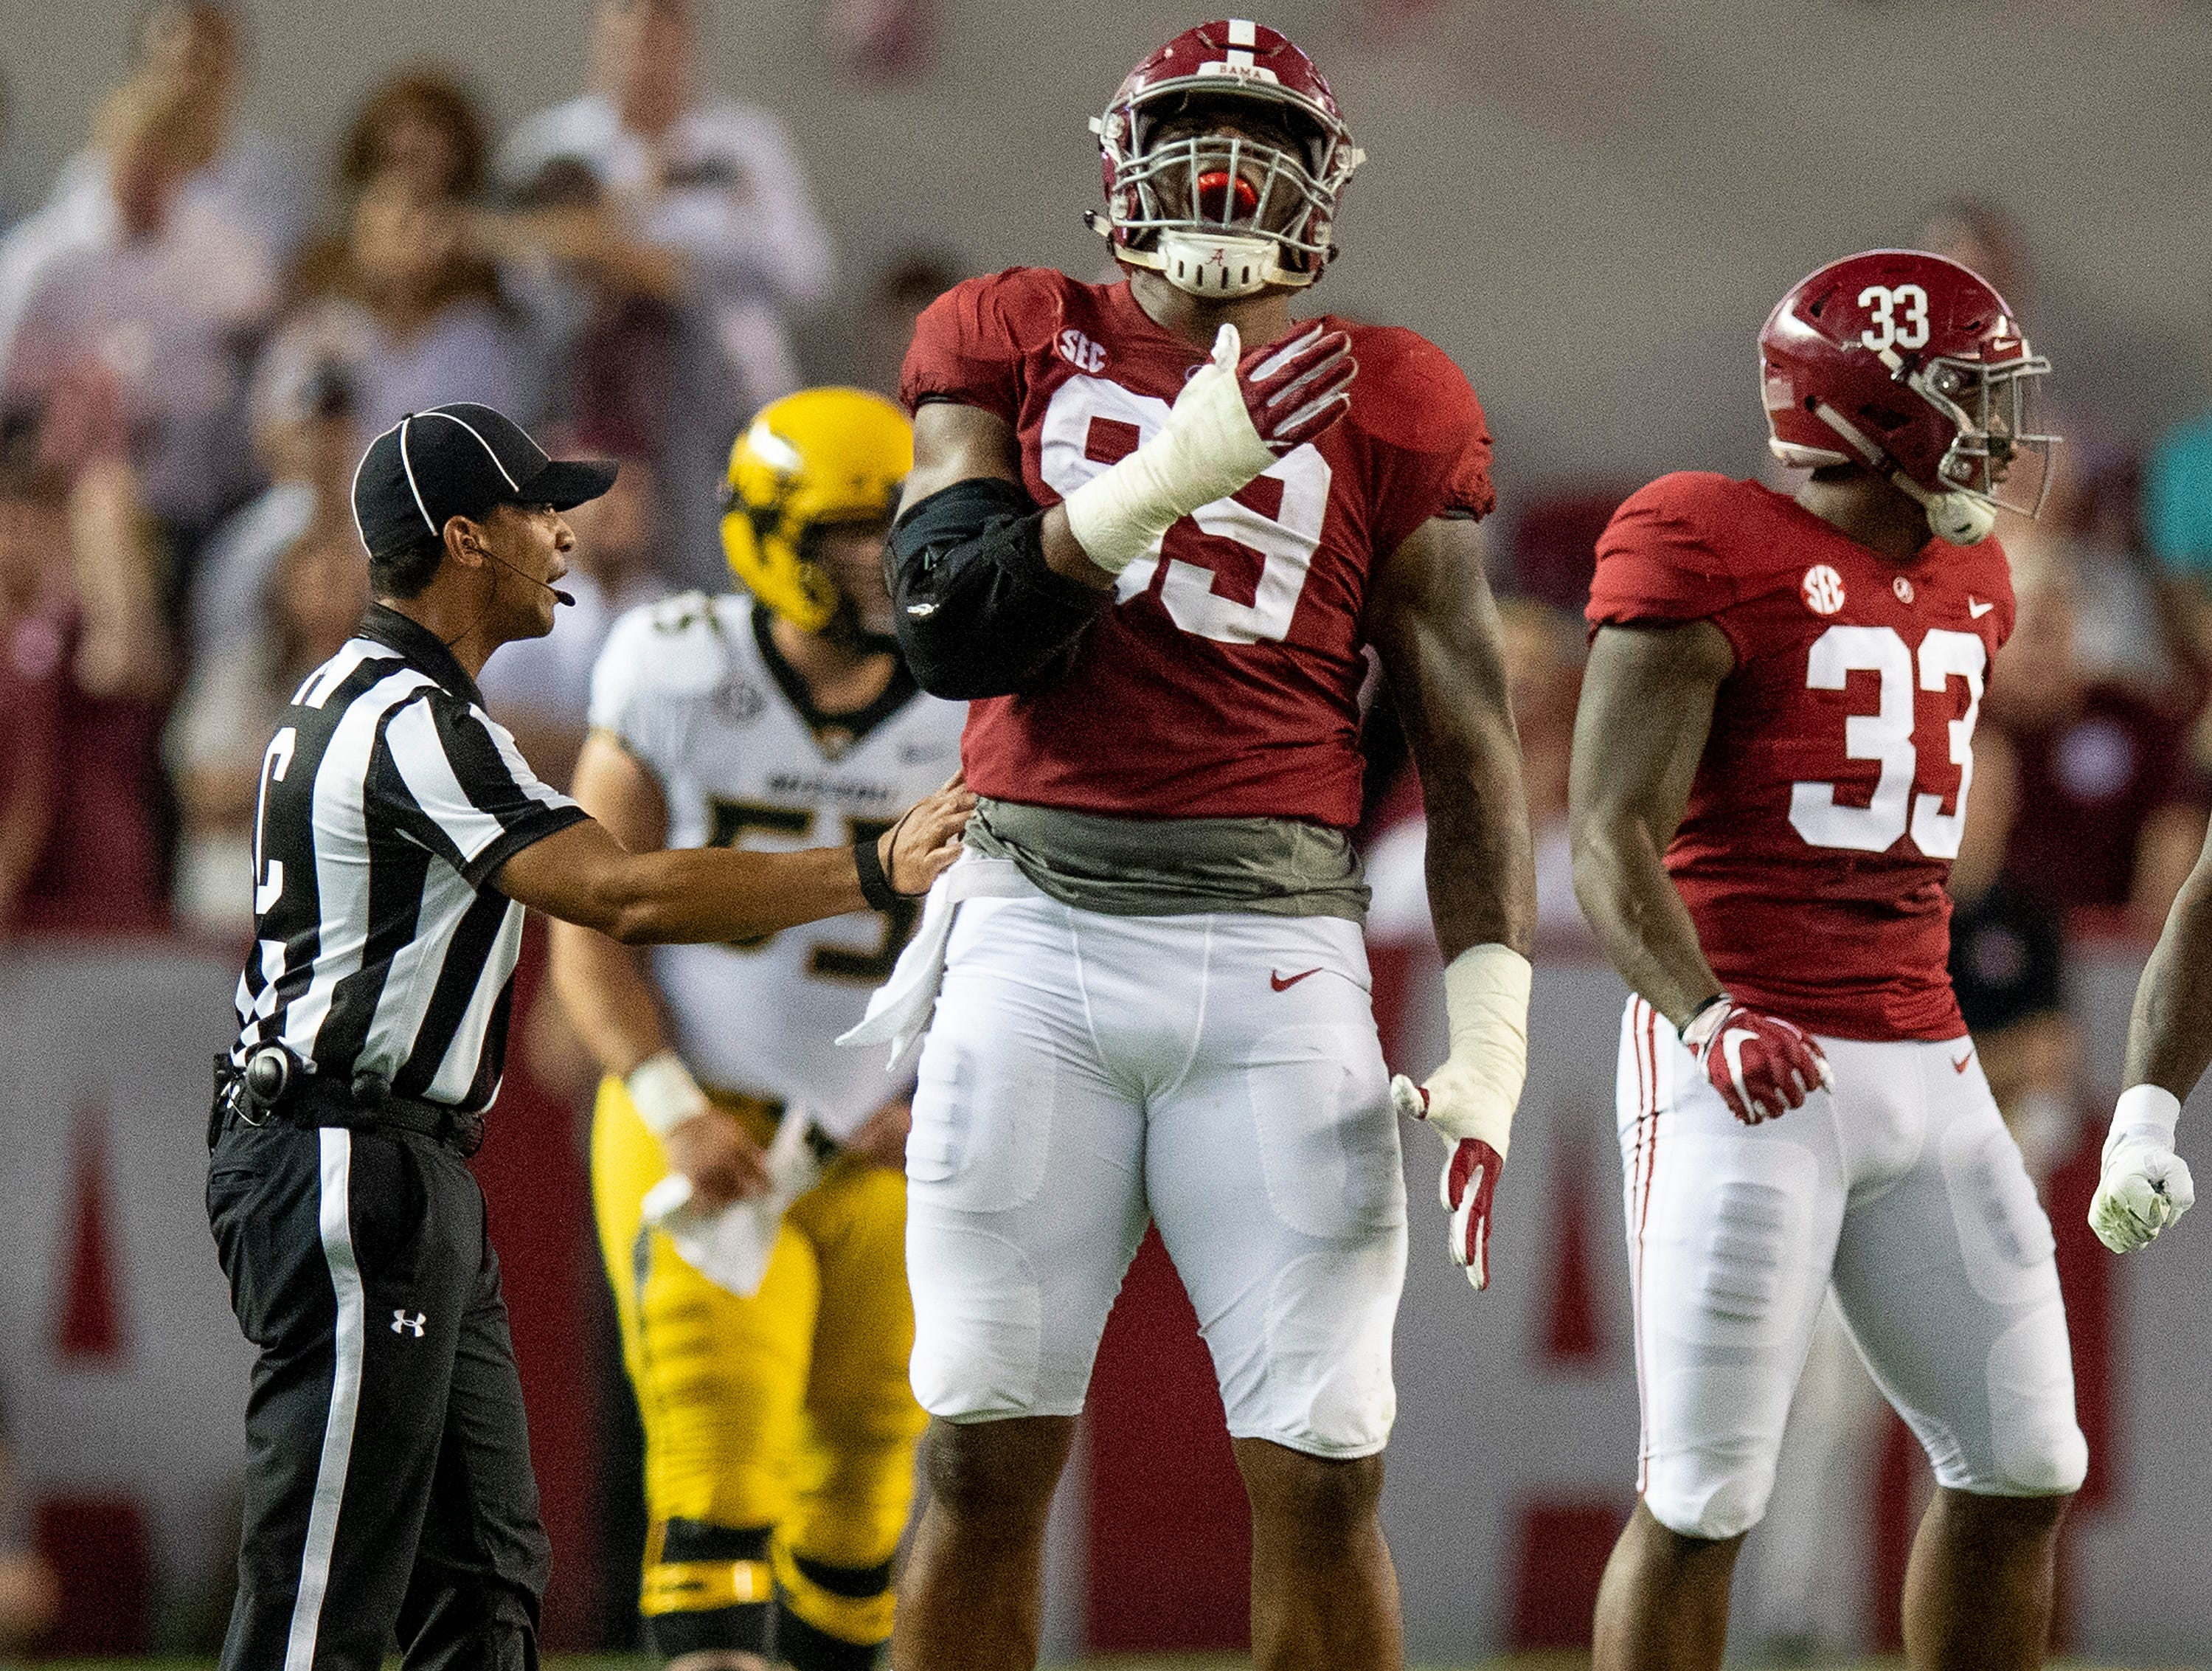 Alabama defensive lineman Raekwon Davis (99) celebrates a tackle for a loss against Missouri in first half action at Bryant Denny Stadium in Tuscaloosa, Ala., on Saturday October 13, 2018.